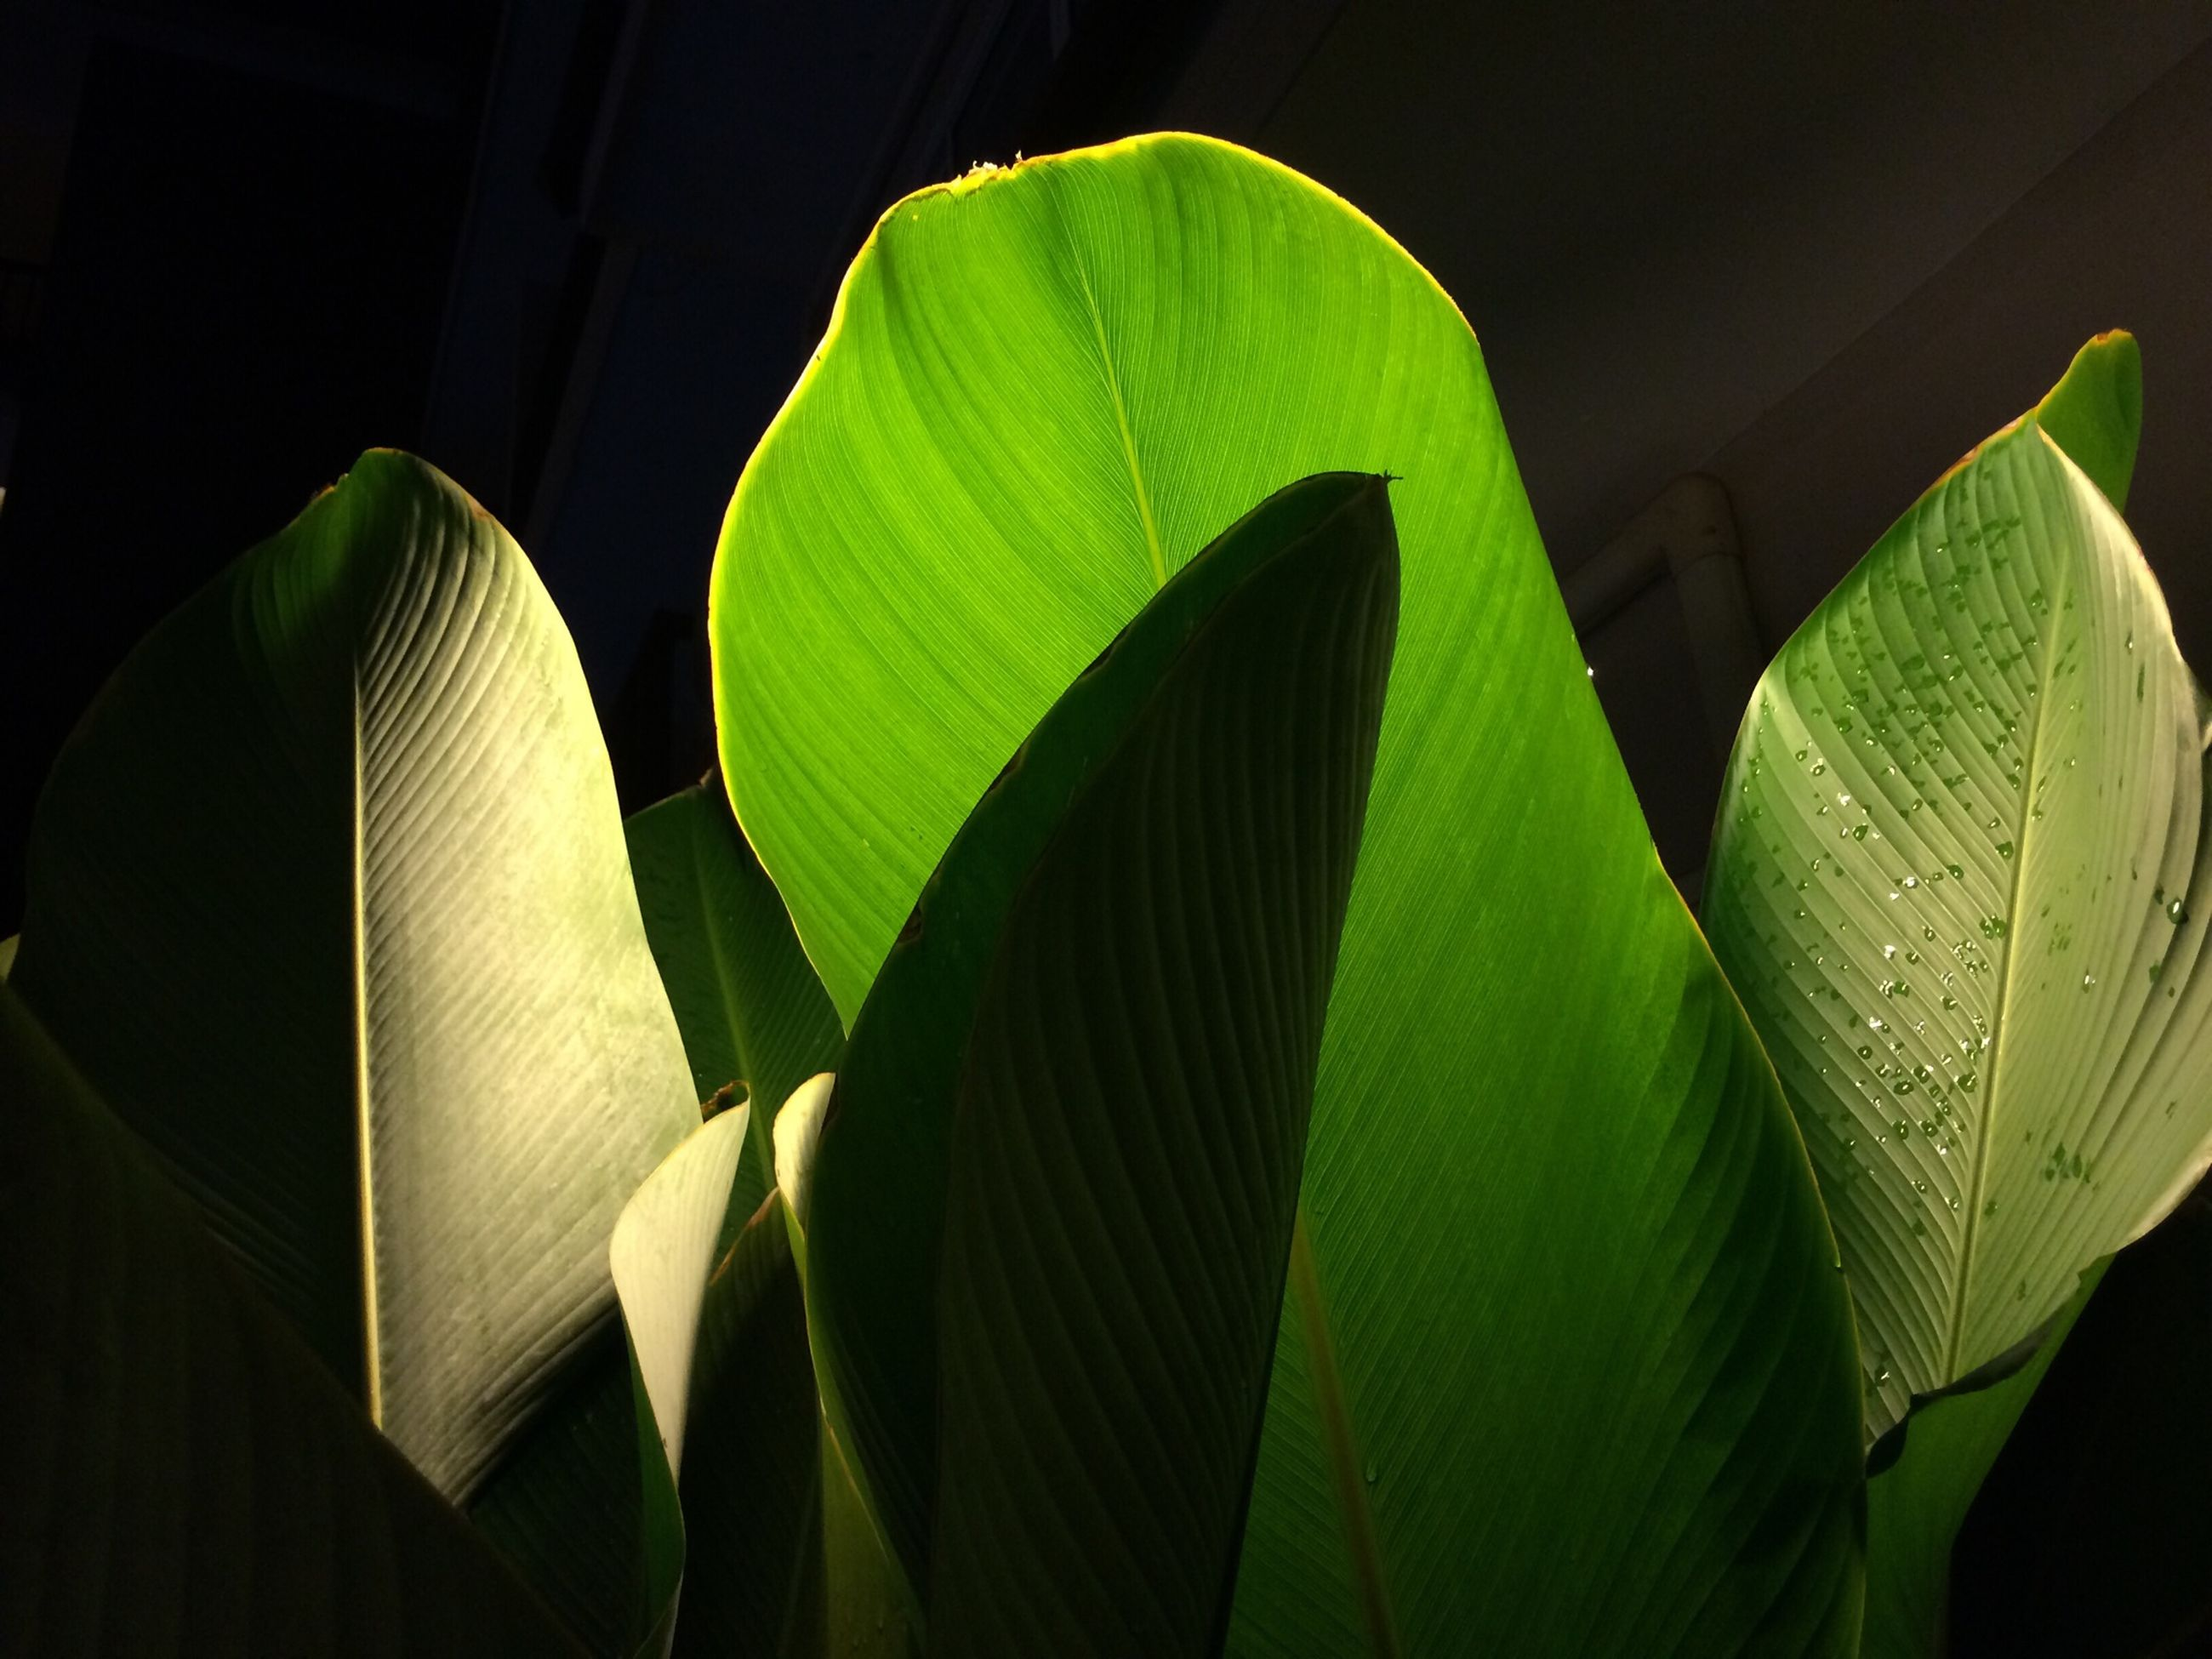 leaf, green color, leaf vein, growth, plant, indoors, close-up, green, nature, leaves, pattern, sunlight, natural pattern, no people, day, beauty in nature, focus on foreground, low angle view